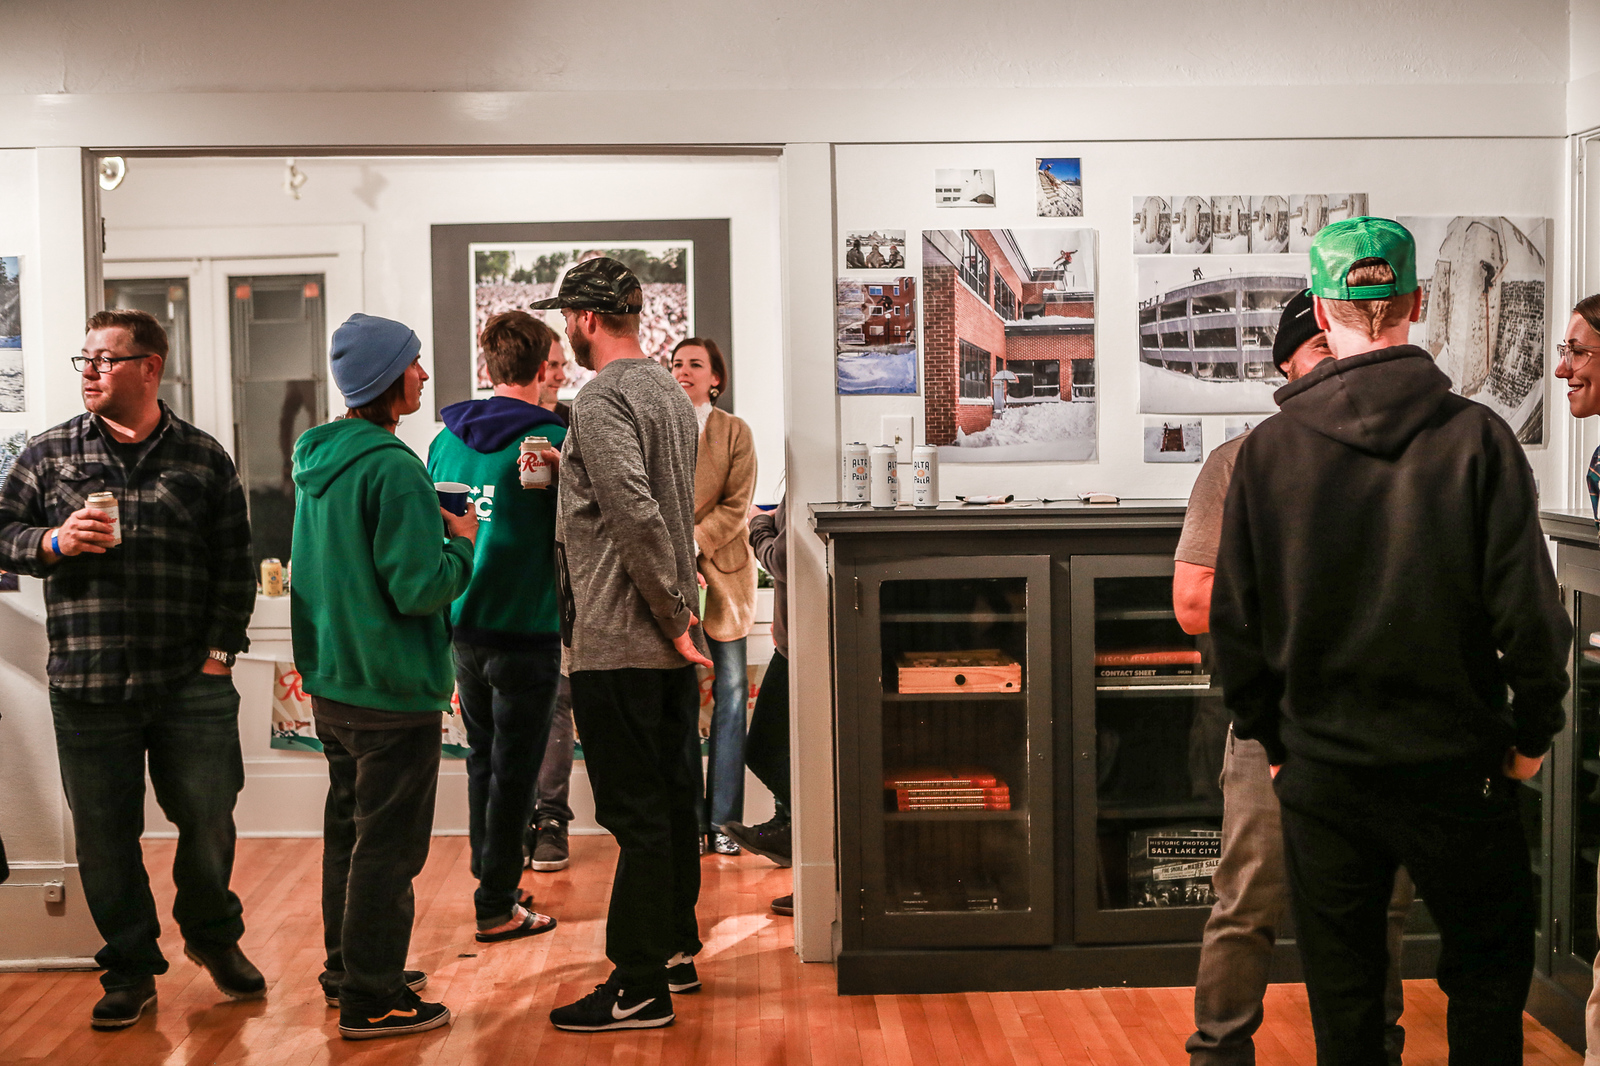 2017.10.9-Arbor Snowboard Premiere@Clubhouse_PhotoCollectiveStudios.com-0162-X3.jpg